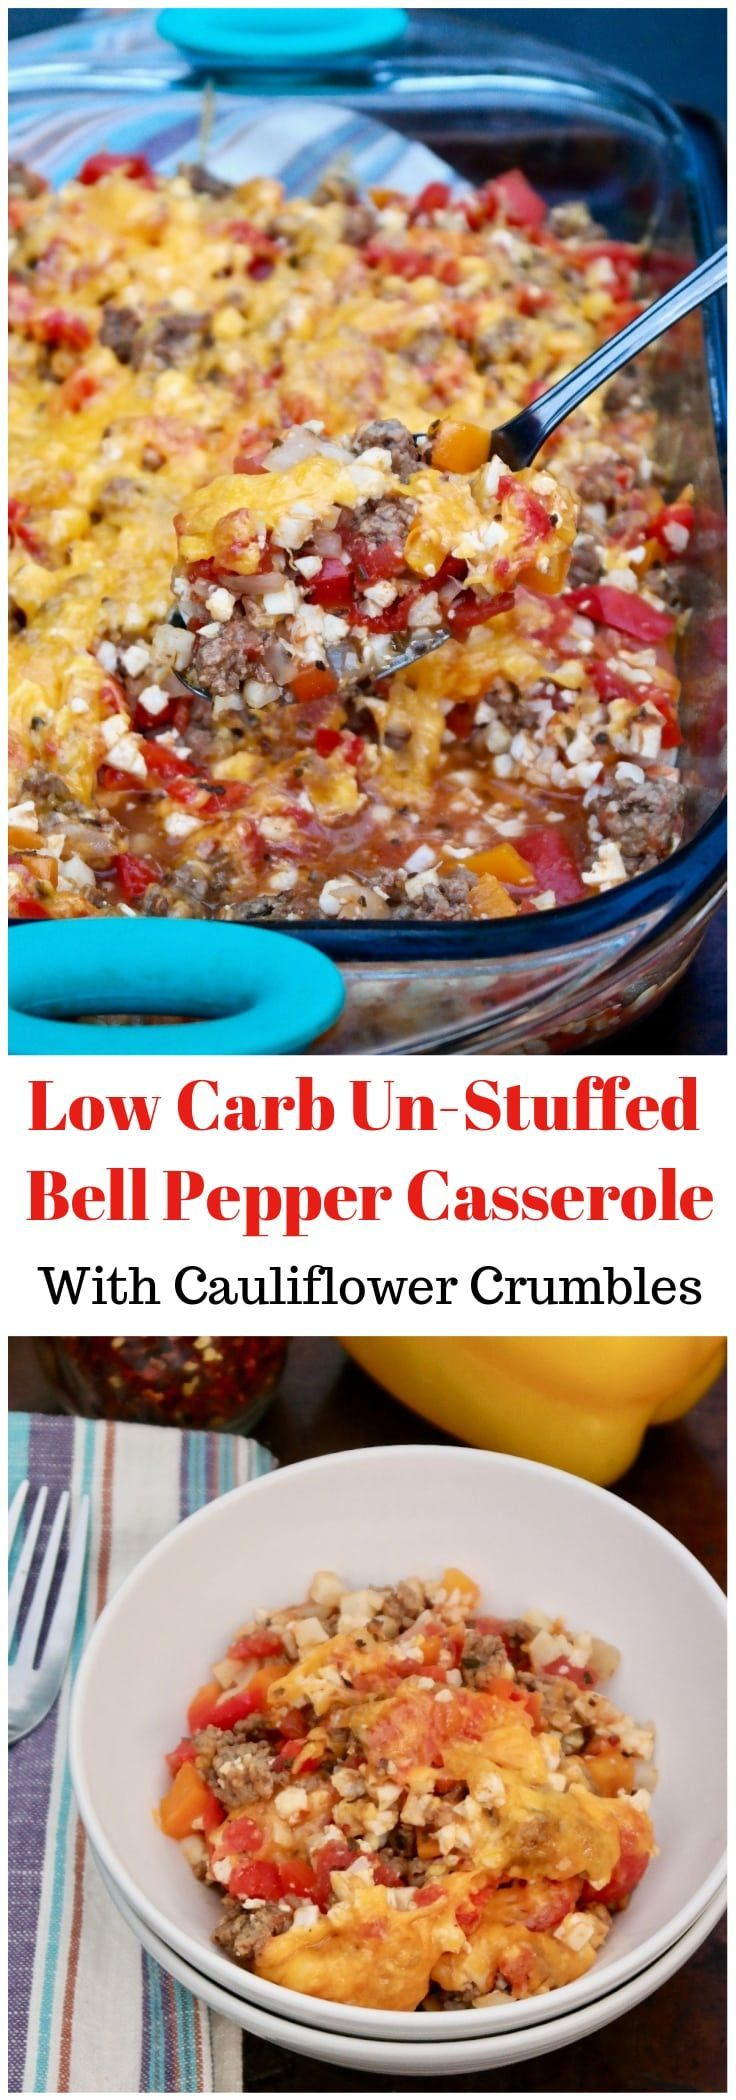 A classic dish turned low carb! Easy unstuffed bell pepper casserole made with diced peppers and cauliflower crumbles topped with melted cheese! #LowCarb #casserole #BellPepper